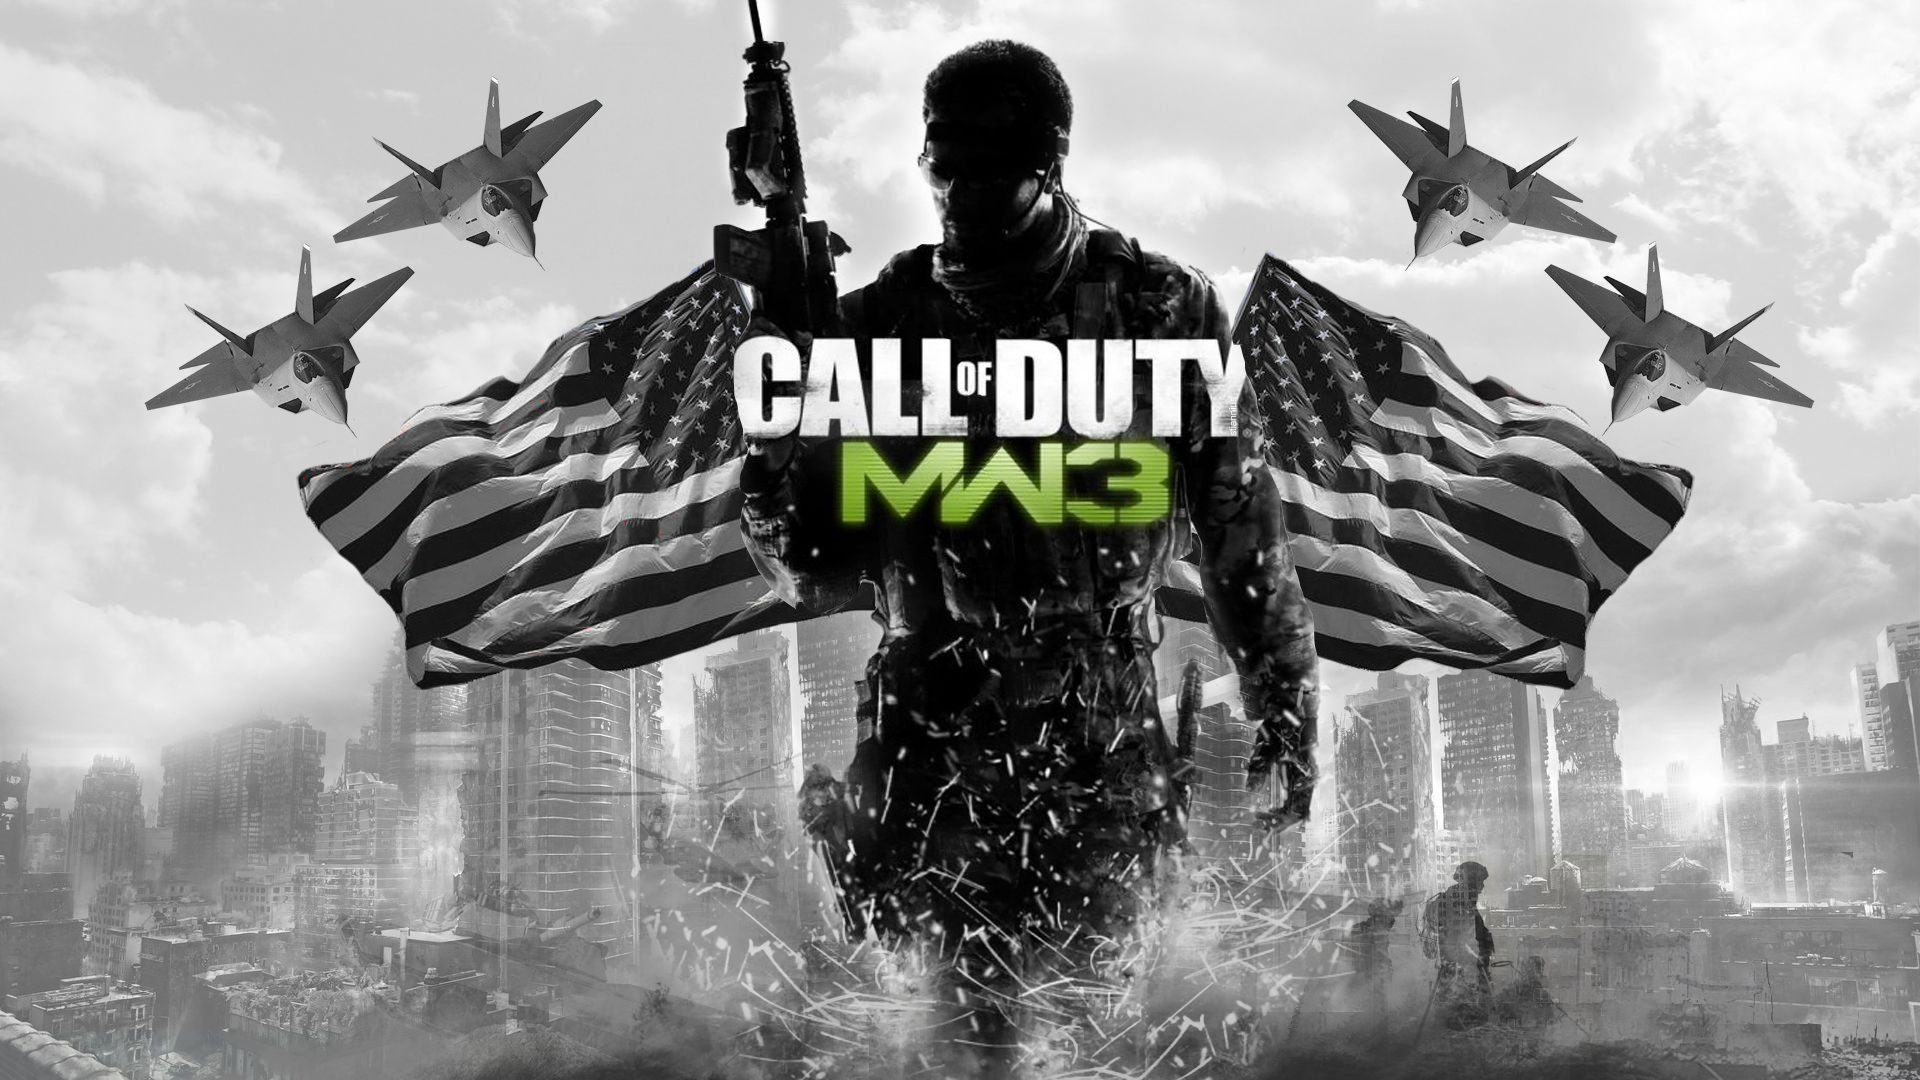 Megapost]Wallpapers de Call of Duty Mw3 y Battlefield 3   Taringa 1920x1080